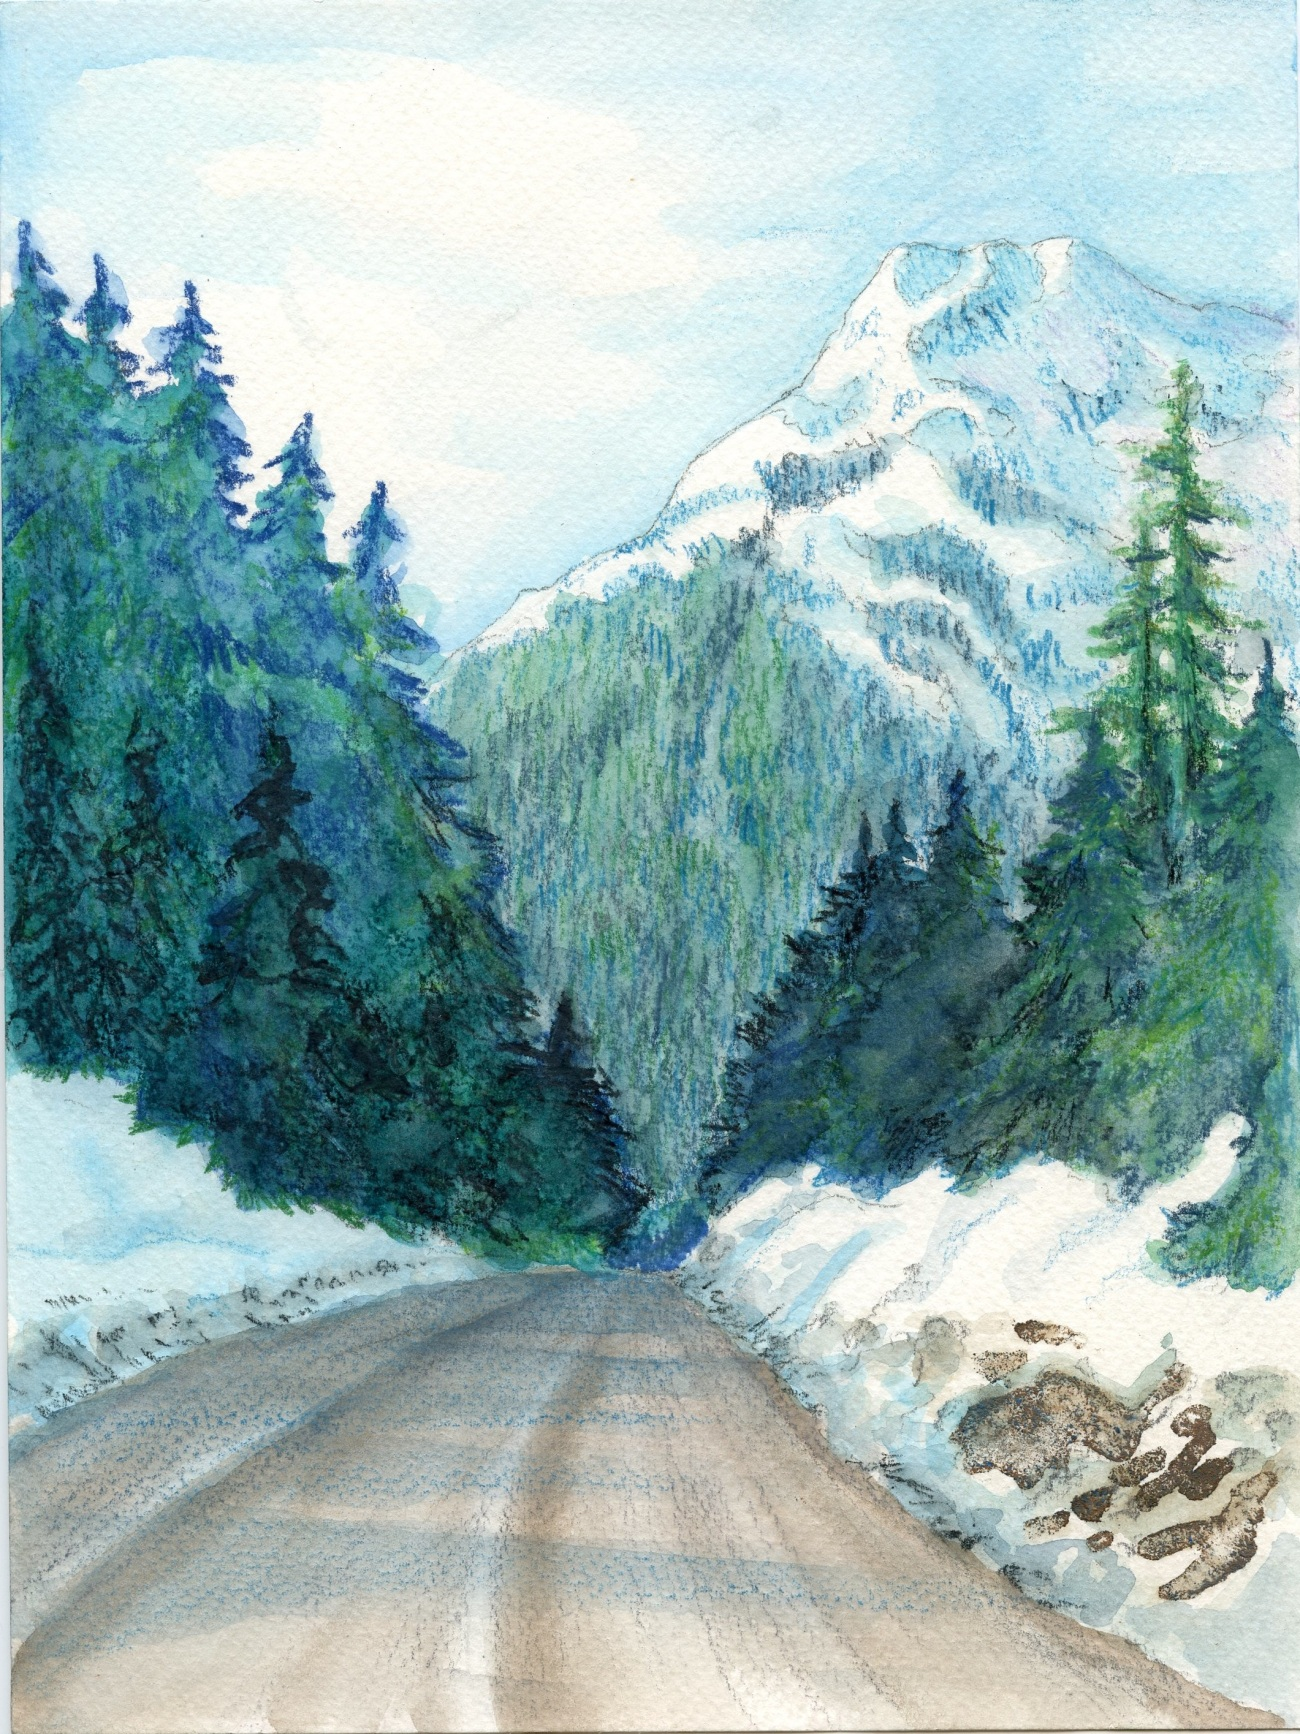 Landscape drawing with watercolored pencils. Credit to